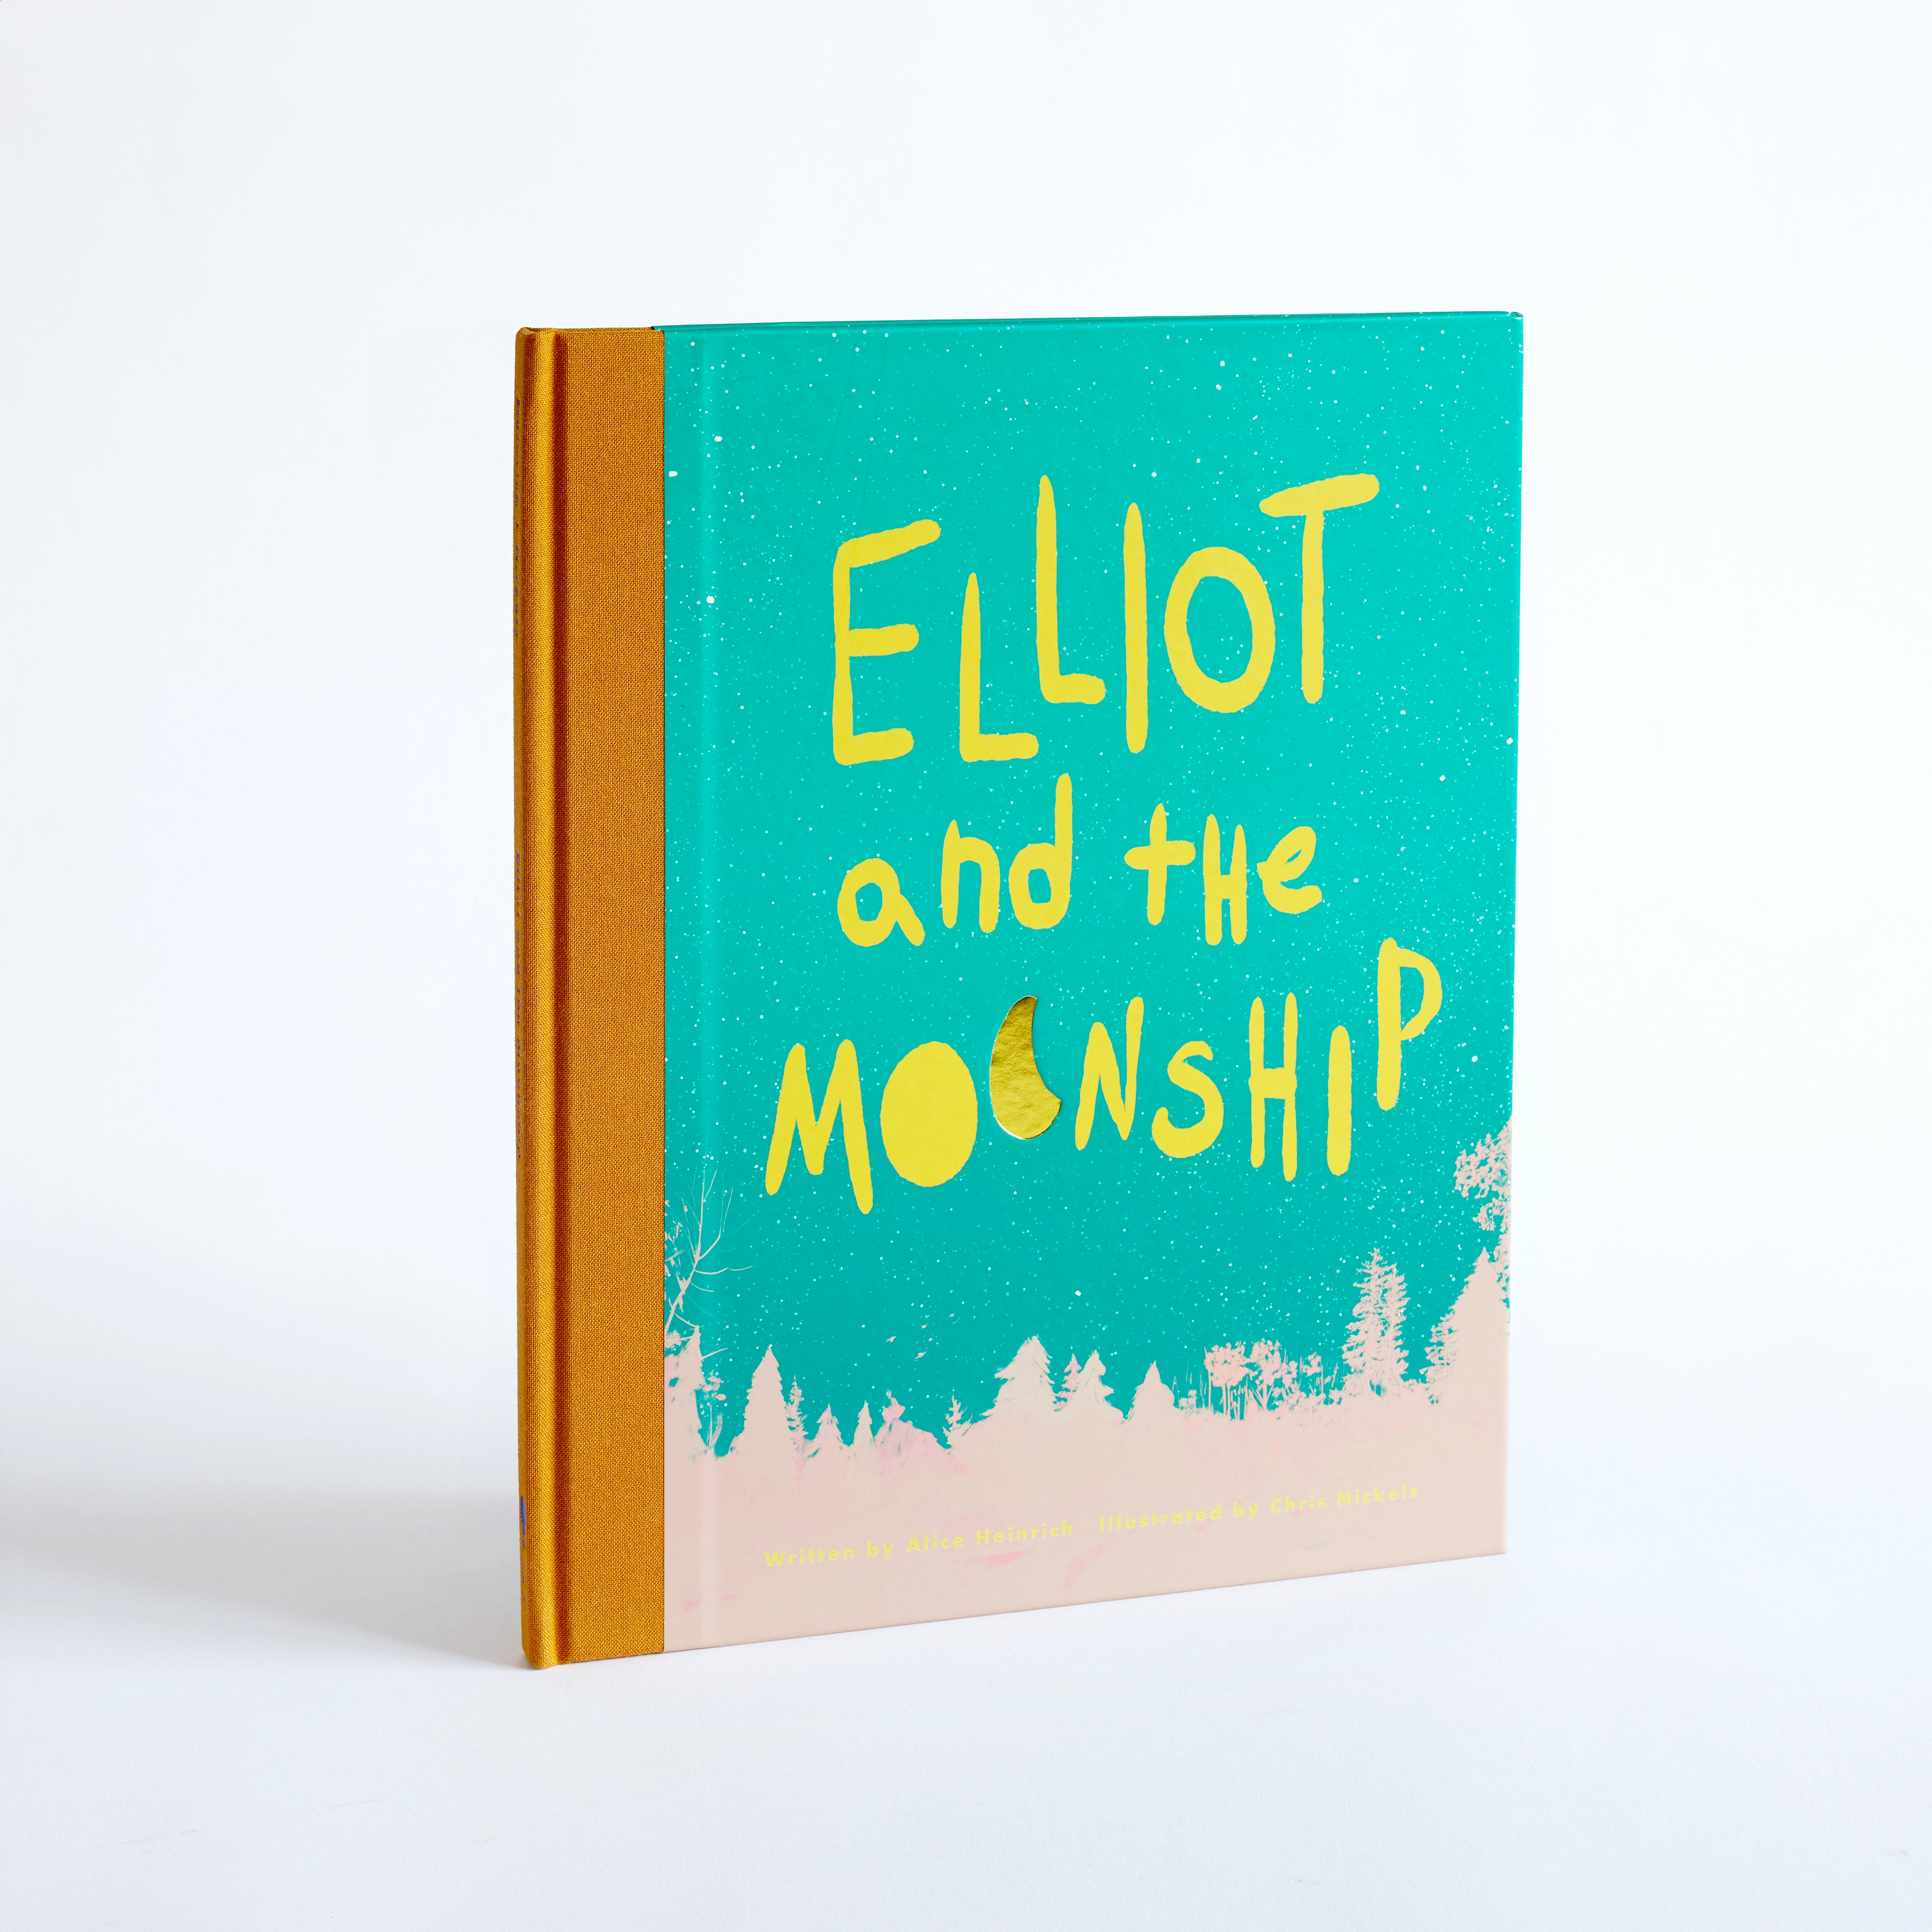 Elliot and the Moonship- Written by Alice Heinrich and Illustrated by Chris Nickels